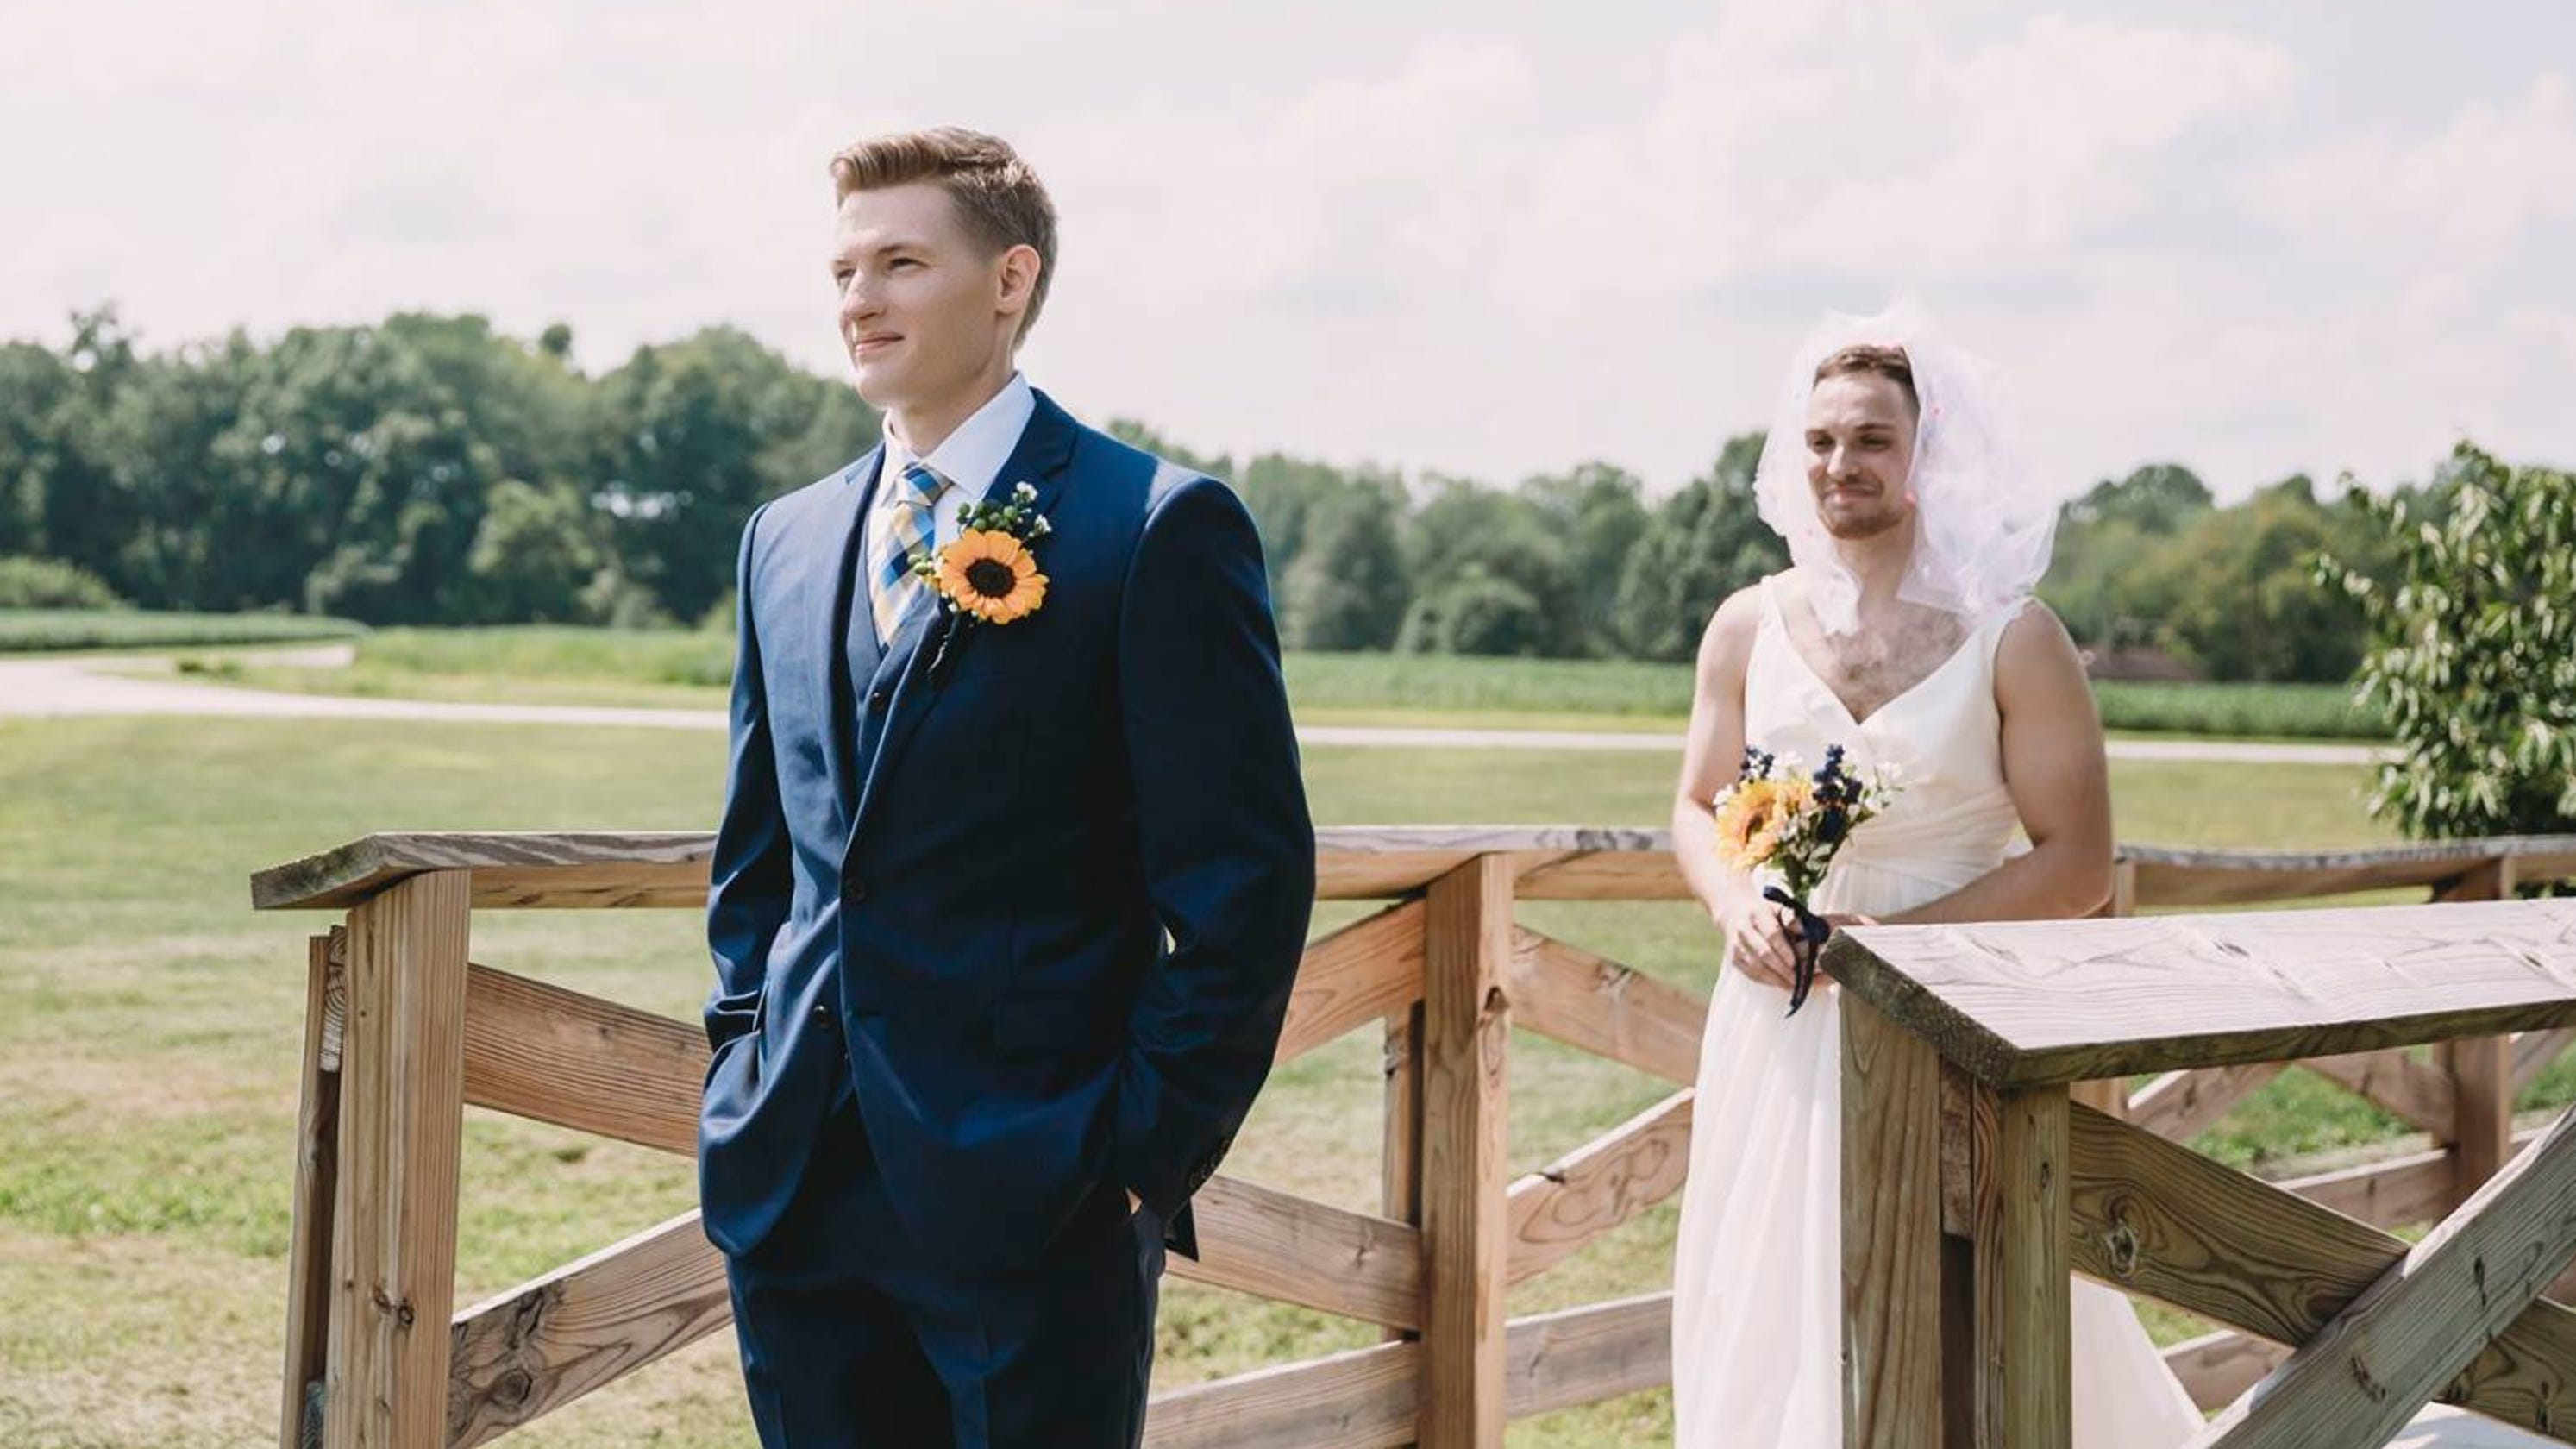 Indiana bride pulls amazing first look prank on her groom at their wedding